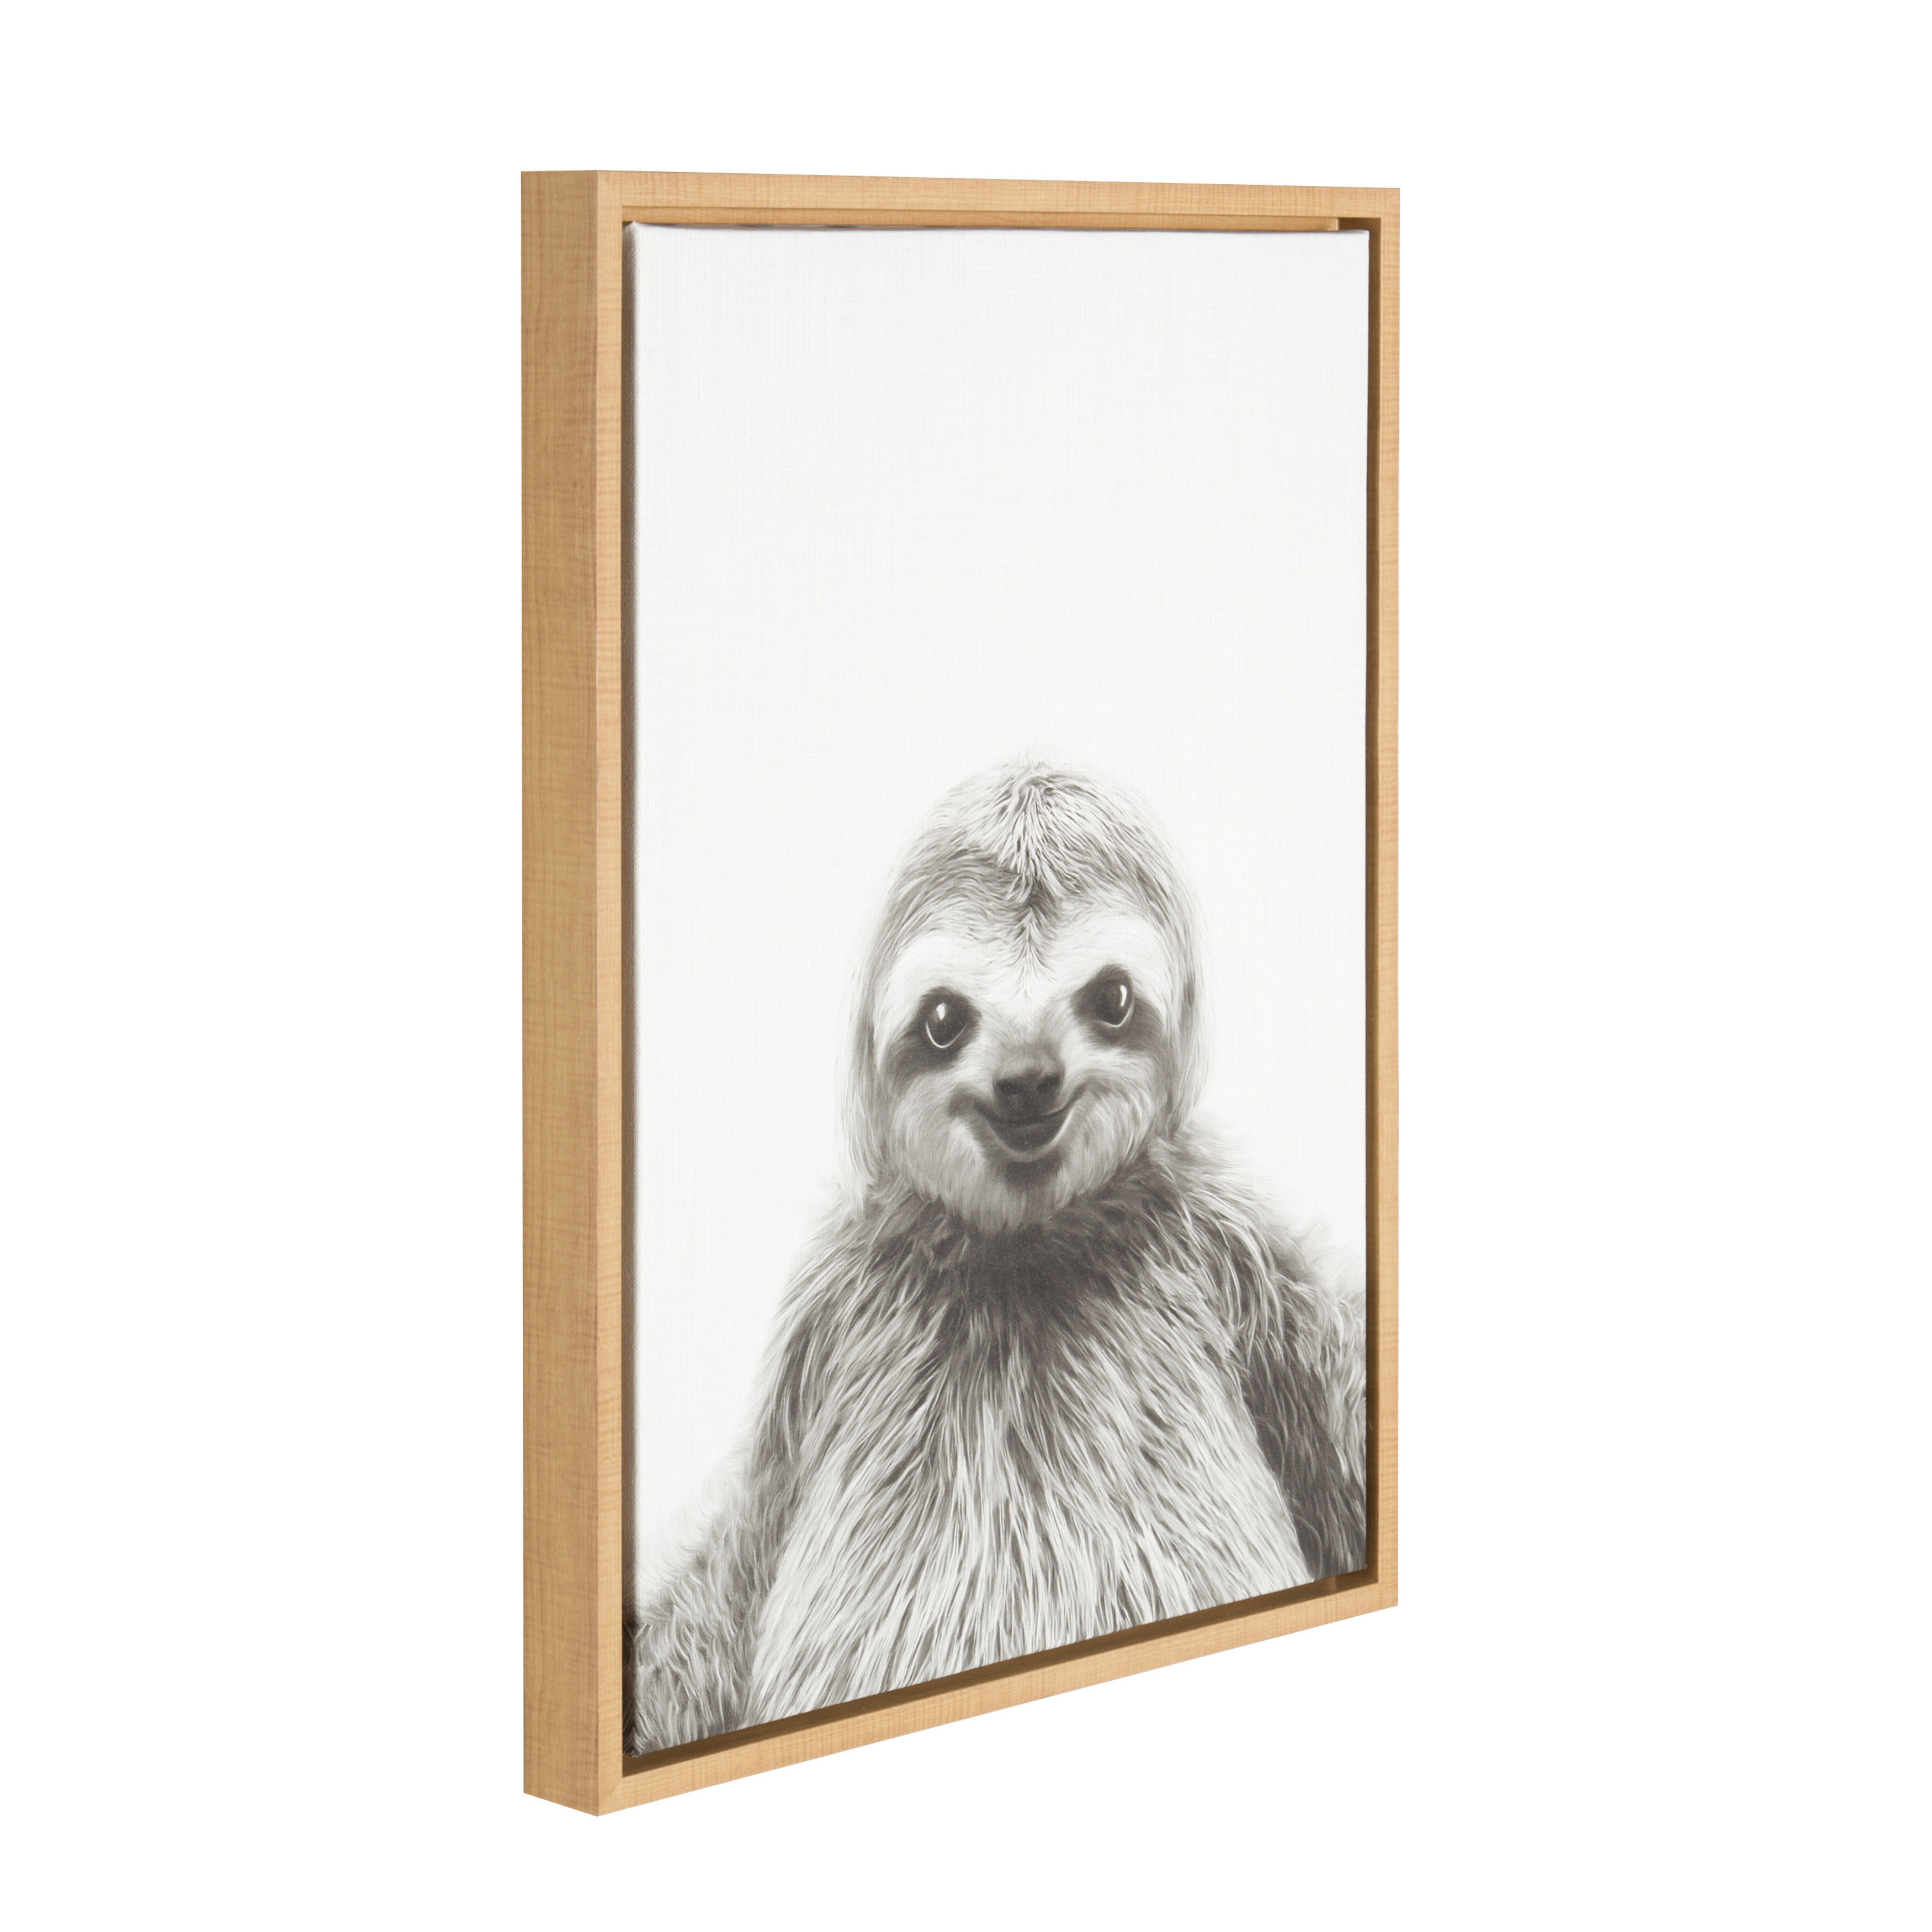 Kate And Laurel Sylvie Sloth Black And White Portrait Framed Canvas Wall Art By Simon Te Tai 18x24 Natural Walmart Com Walmart Com